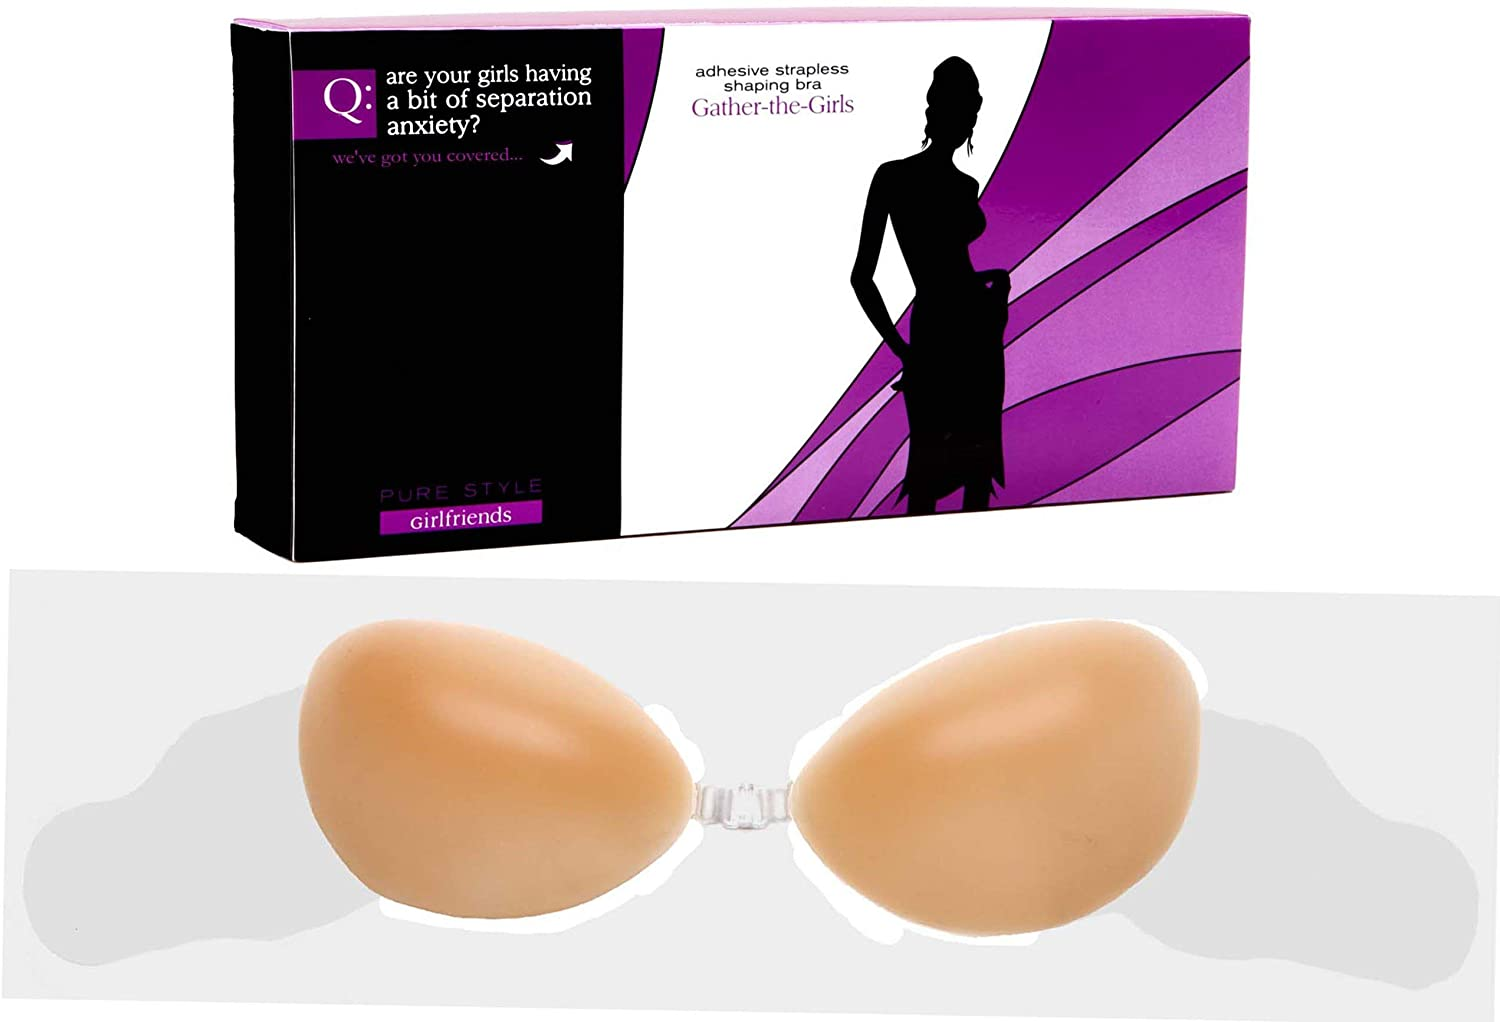 Pure Style Girlfriends Nu Gather-the-Girls Adhesive Silicone Shaping Bra